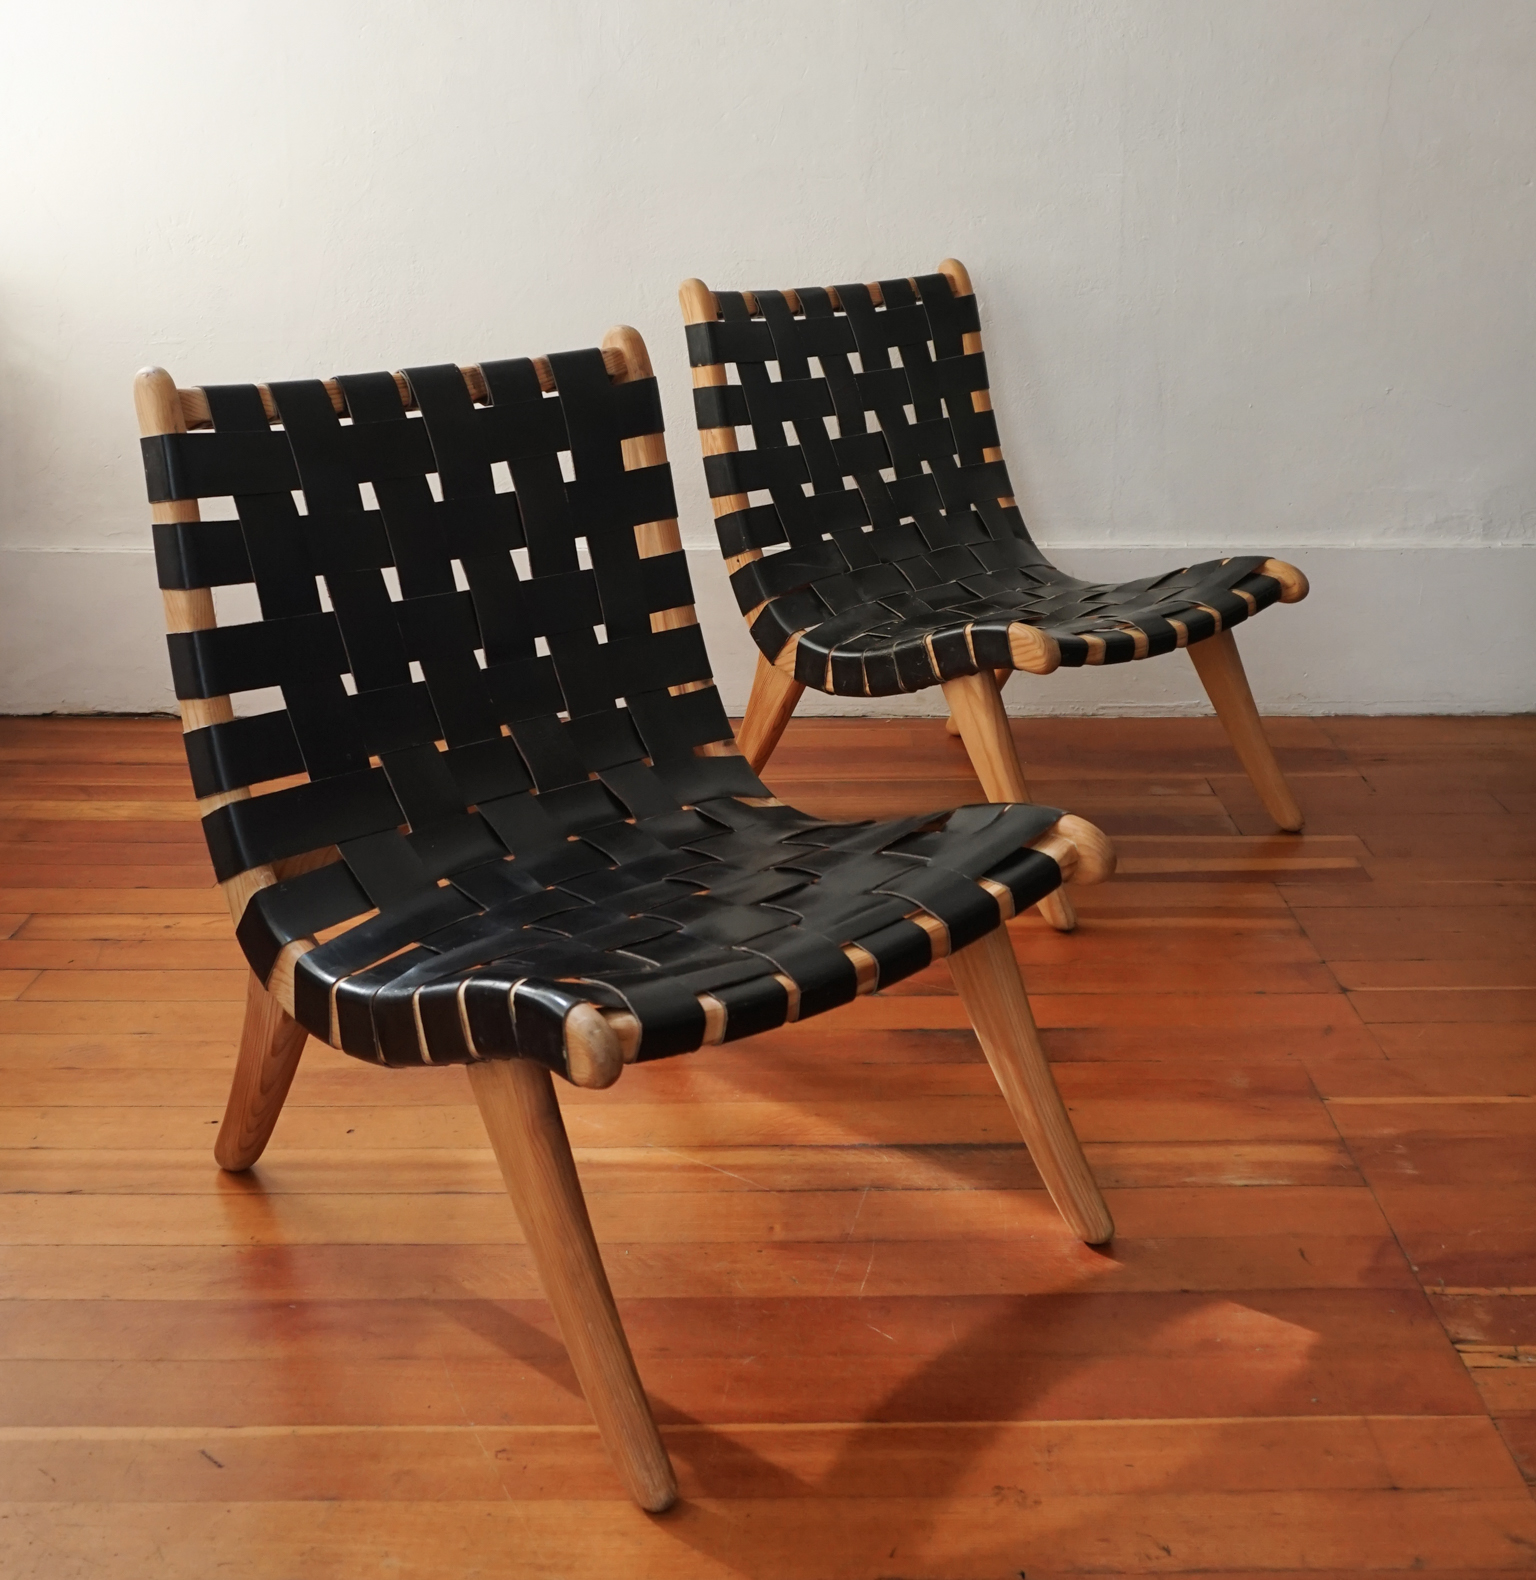 Muebles Domus Van Beuren - Pair Of San Miguelito Chairs By Michael Van Beuren For Domus Of [mjhdah]https://i1.wp.com/www.esotericsurvey.com/wp-content/uploads/2018/01/Michael-Van-Beuren-2.jpg?fit=1536%2C1536